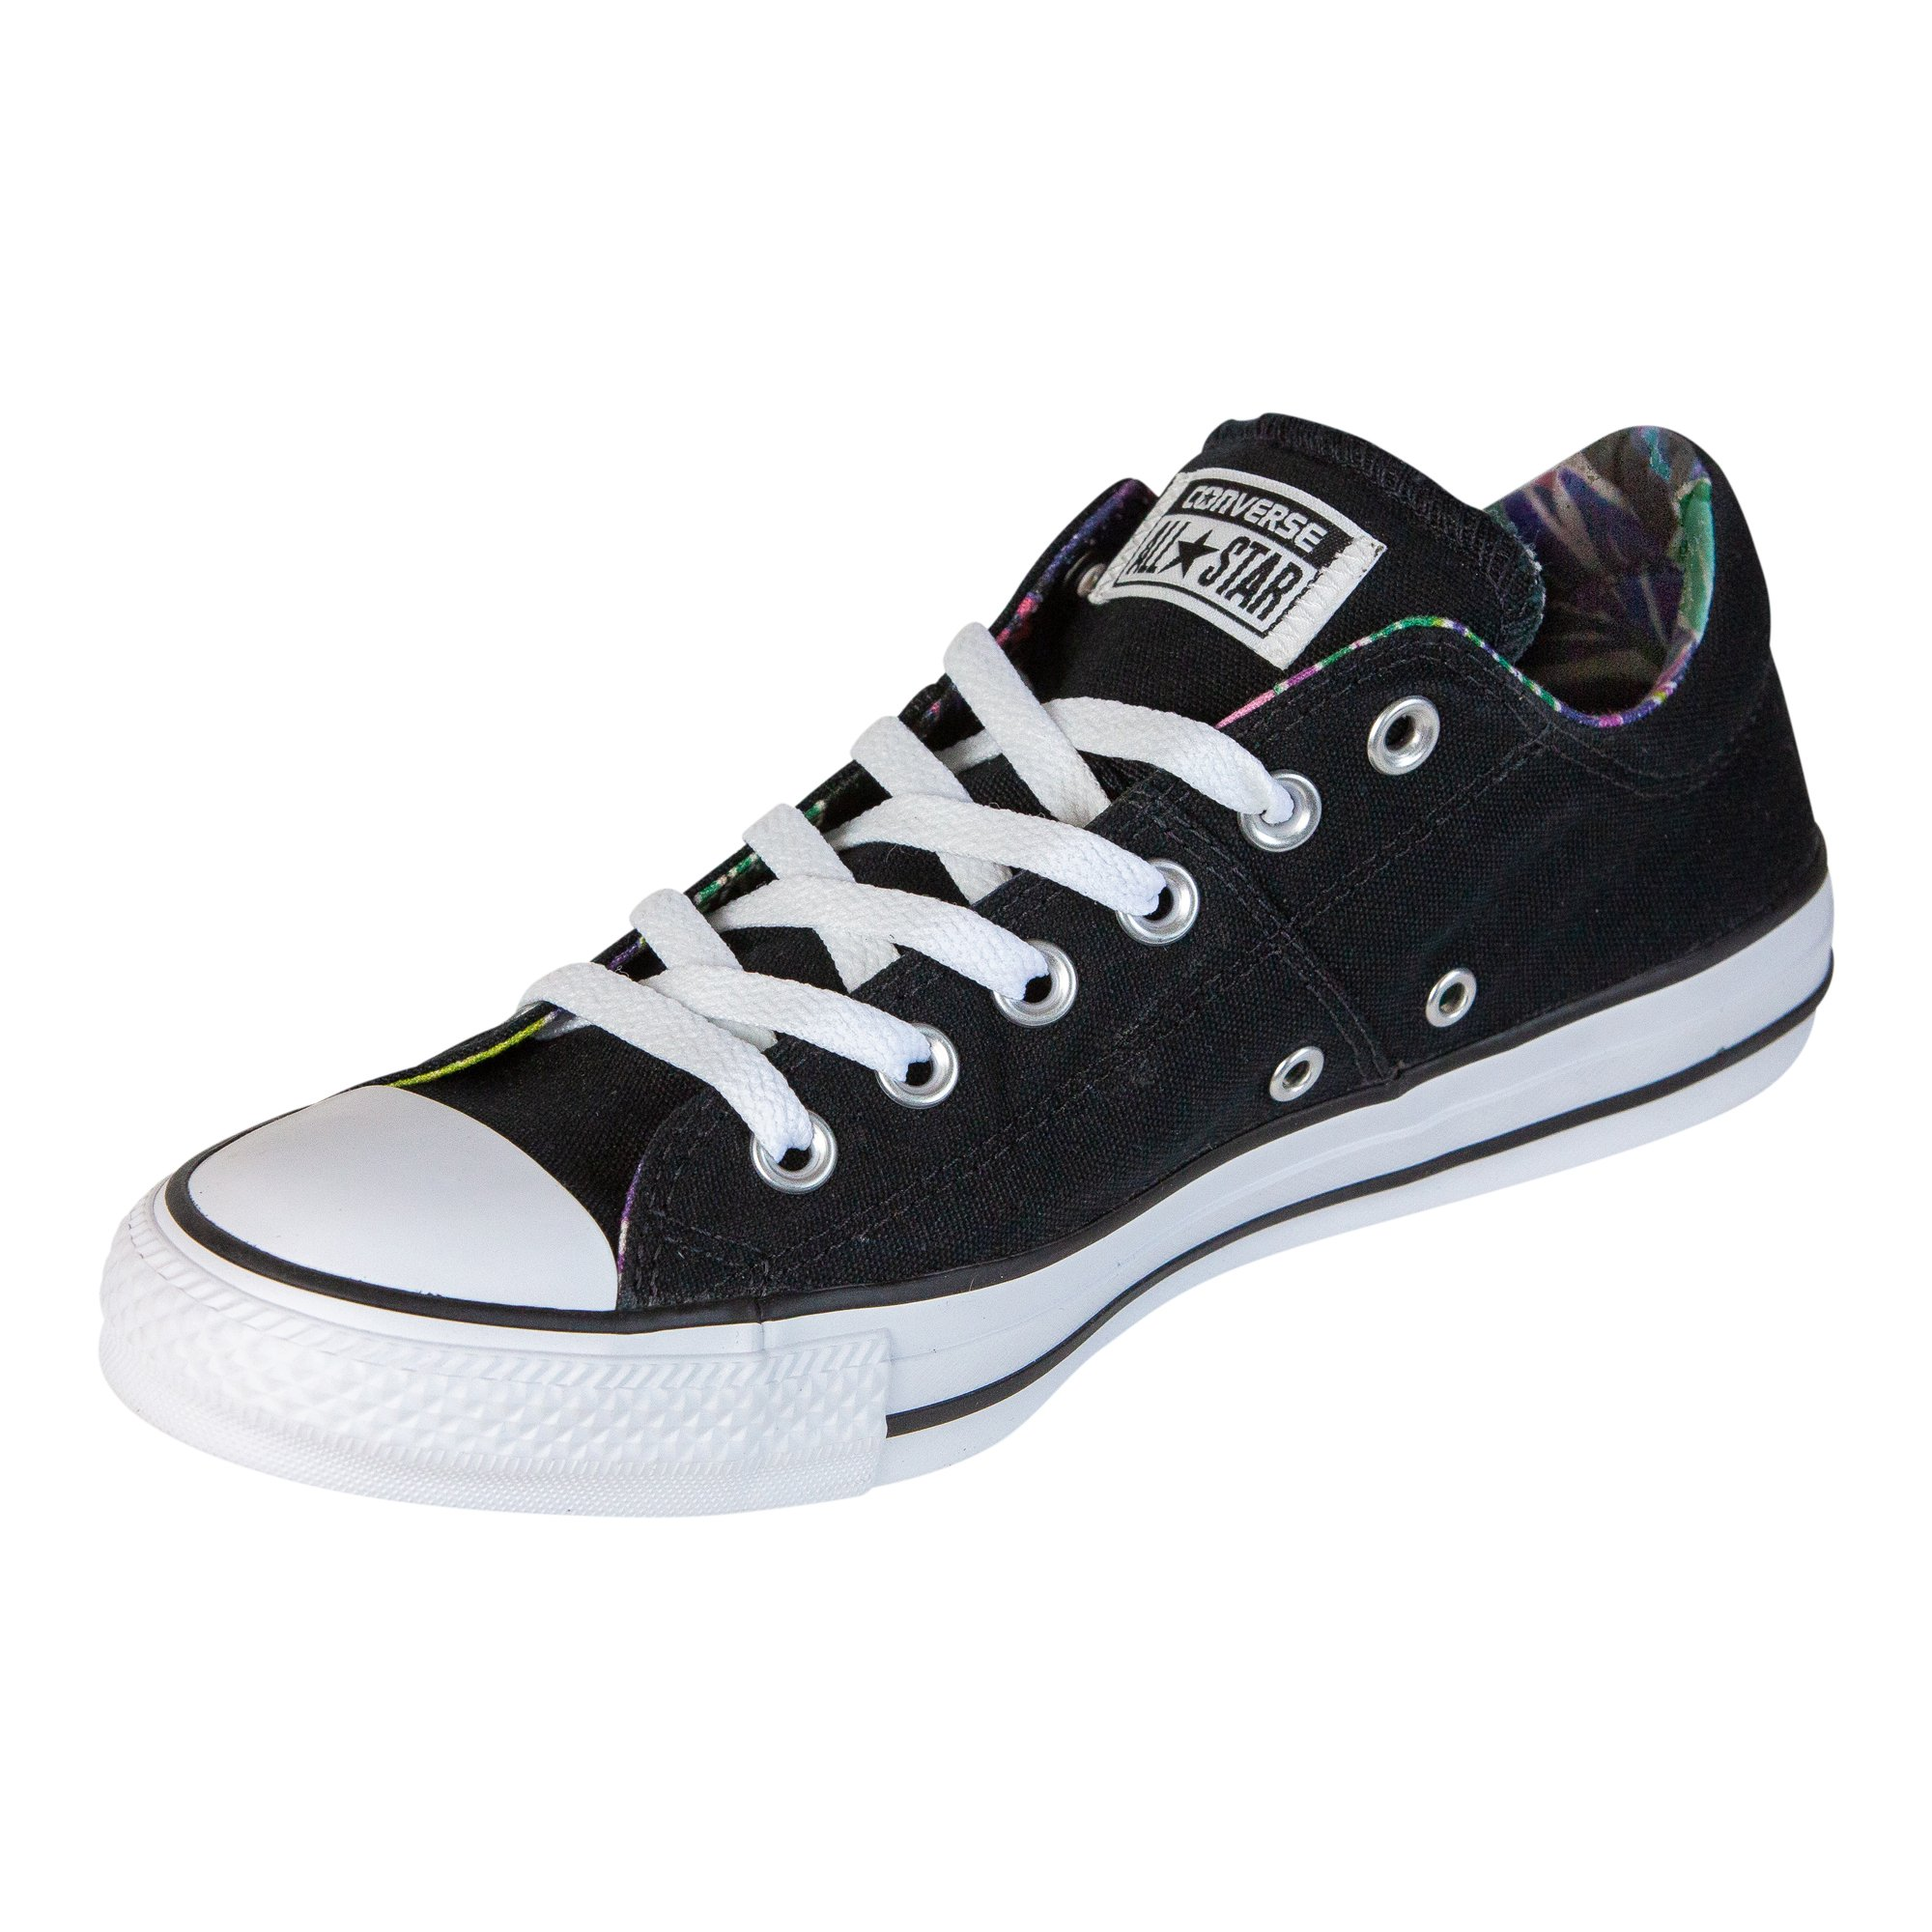 Converse Women's Chuck Taylor All Star Madison Sneakers, Black/White/White, 8 B(M) US